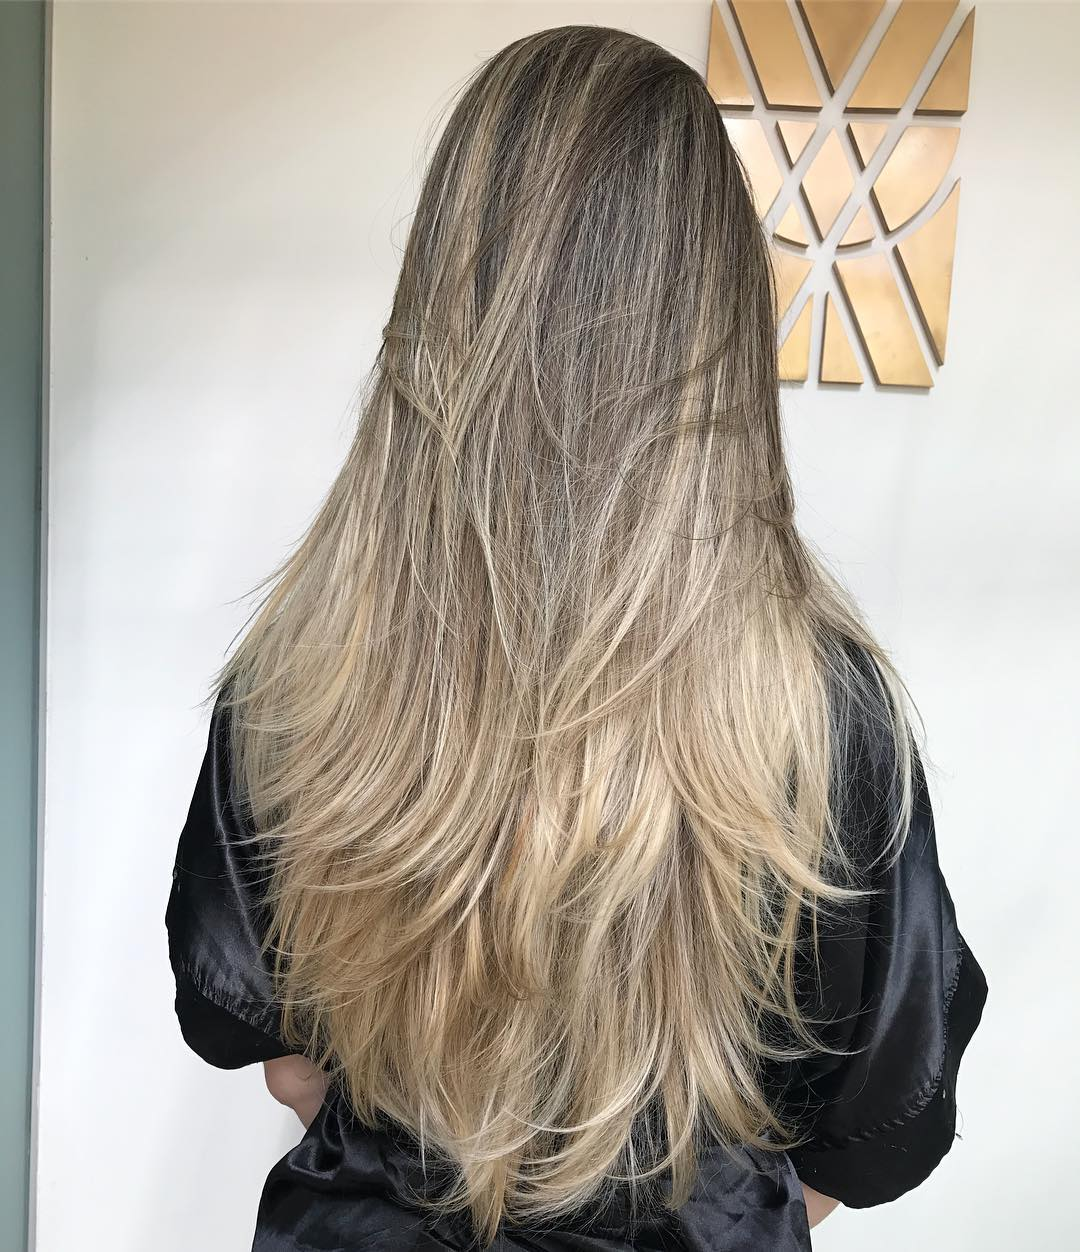 Layered Cut for Long Thick Hair